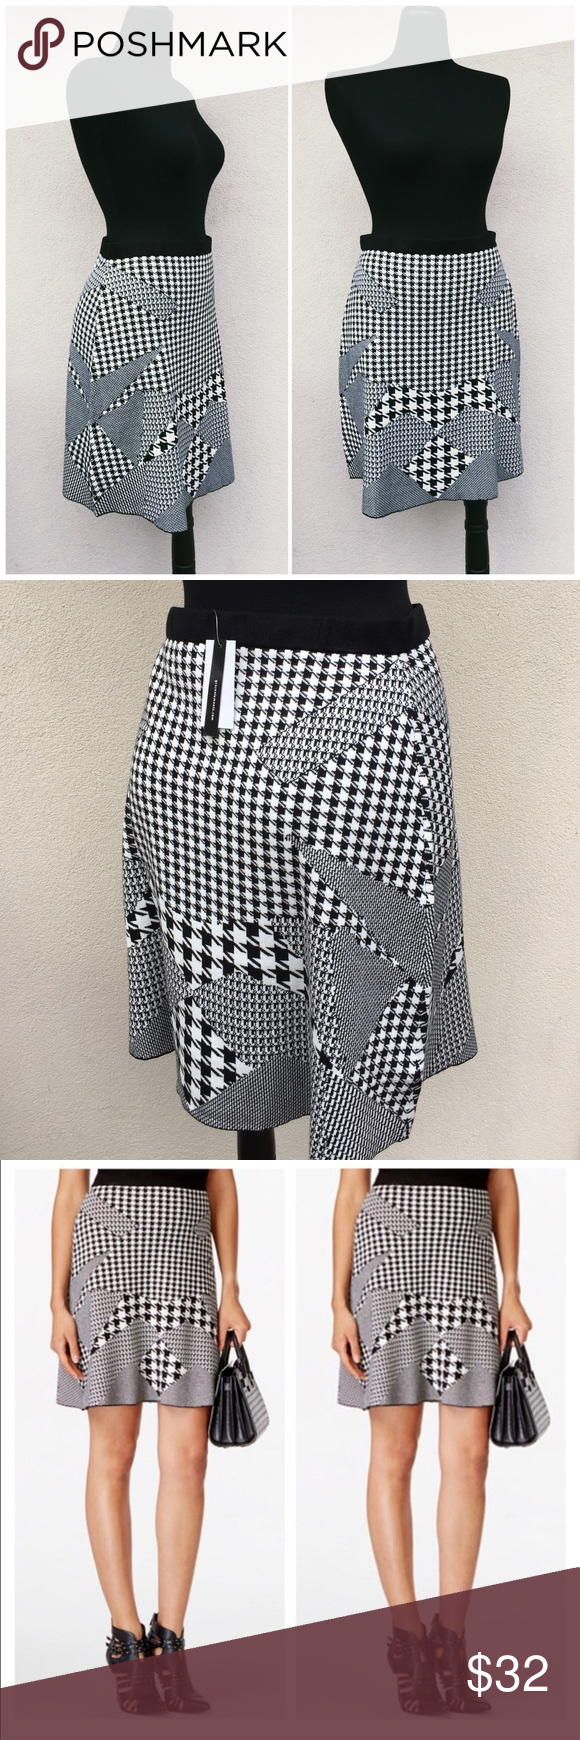 🌟NWT🌟 Sweater Skirt Houndstooth Pattern Skirt is new with tags without any defects. Grace Elements Skirts